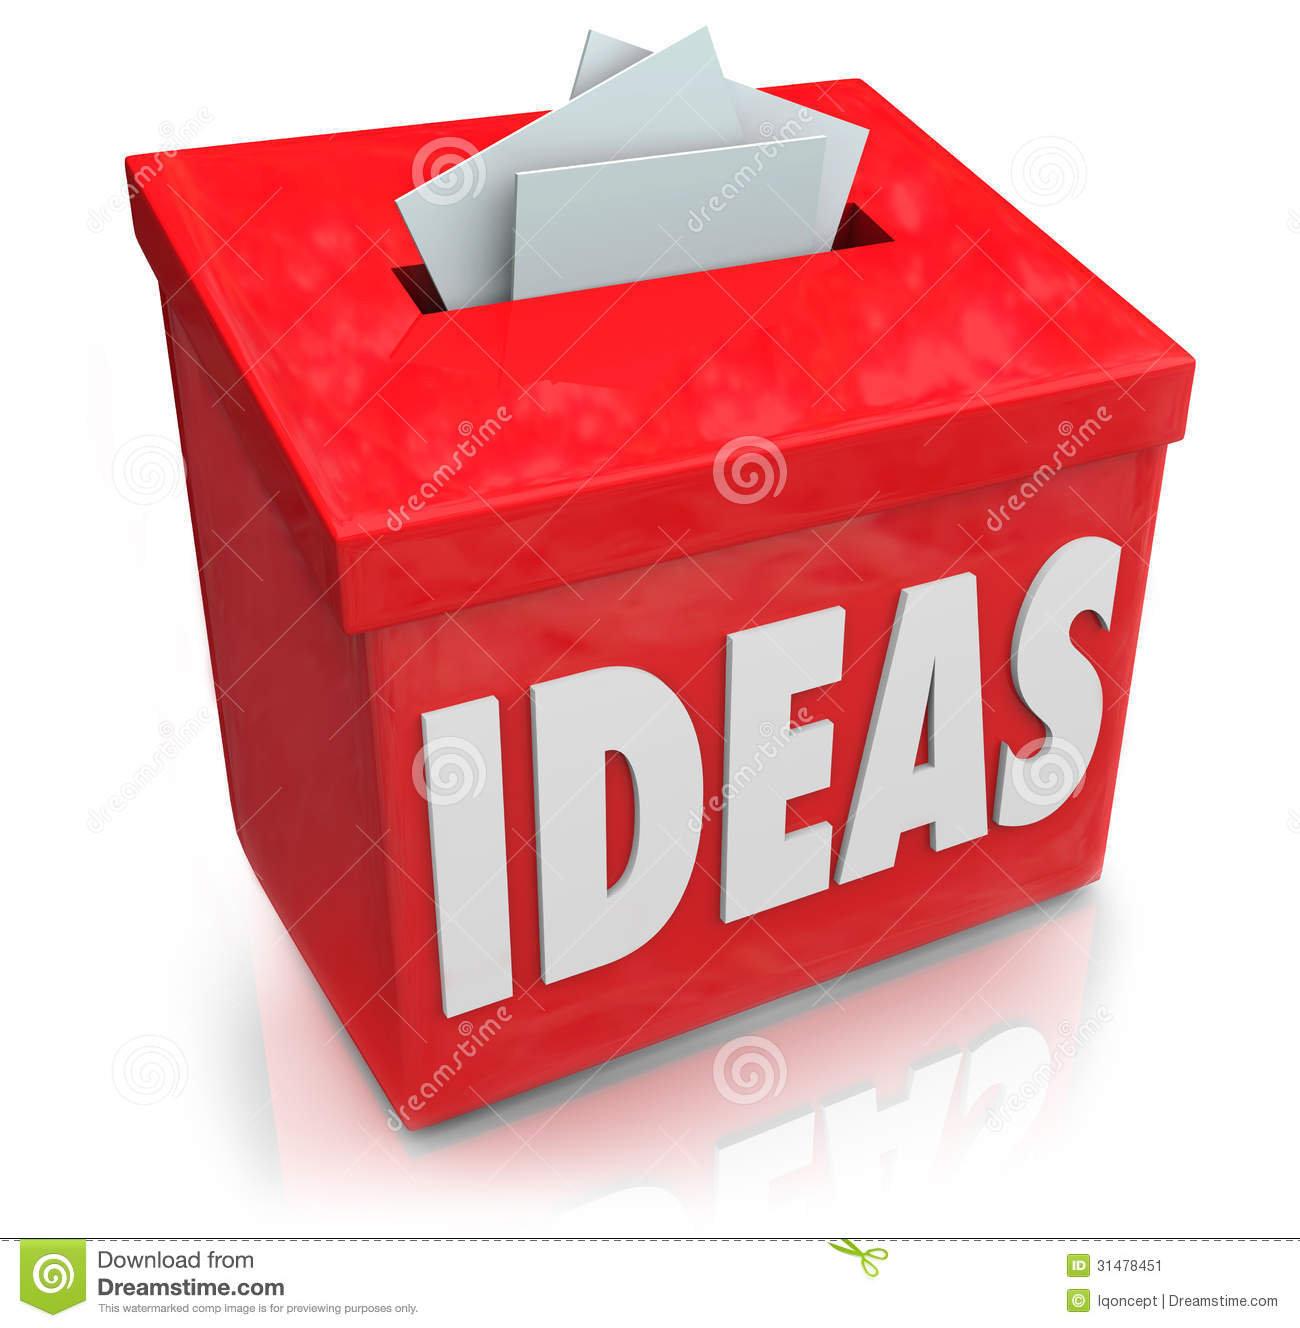 ideas creative innovation suggestion box collecting thoughts ide stock illustration. Black Bedroom Furniture Sets. Home Design Ideas